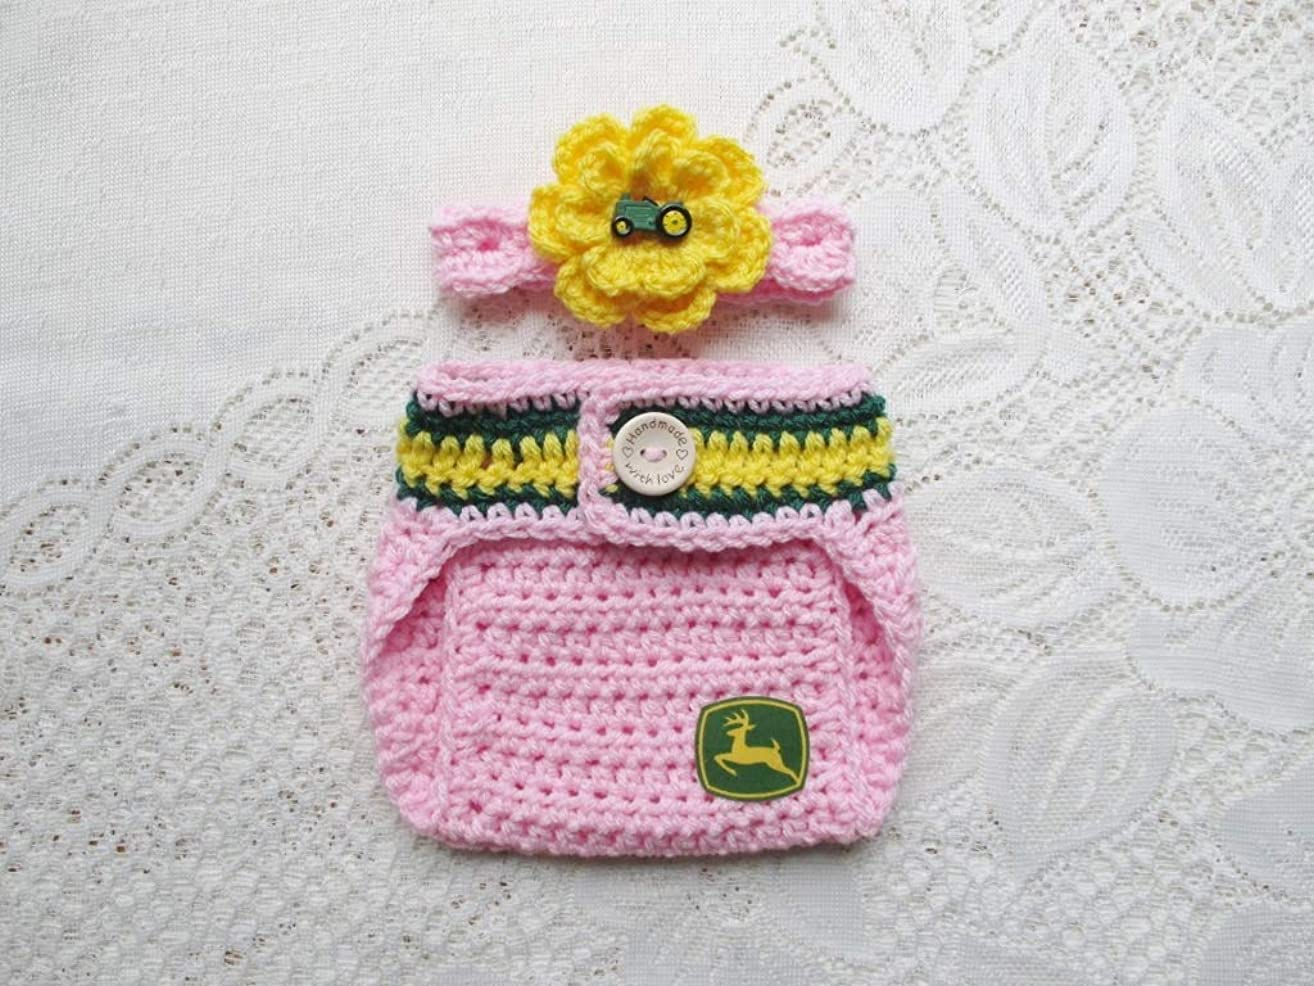 Crochet Baby John Deere Headband and Diaper Cover Set - Baby Photo Prop - Baby Shower Gift - Available in 0 to 6 Months